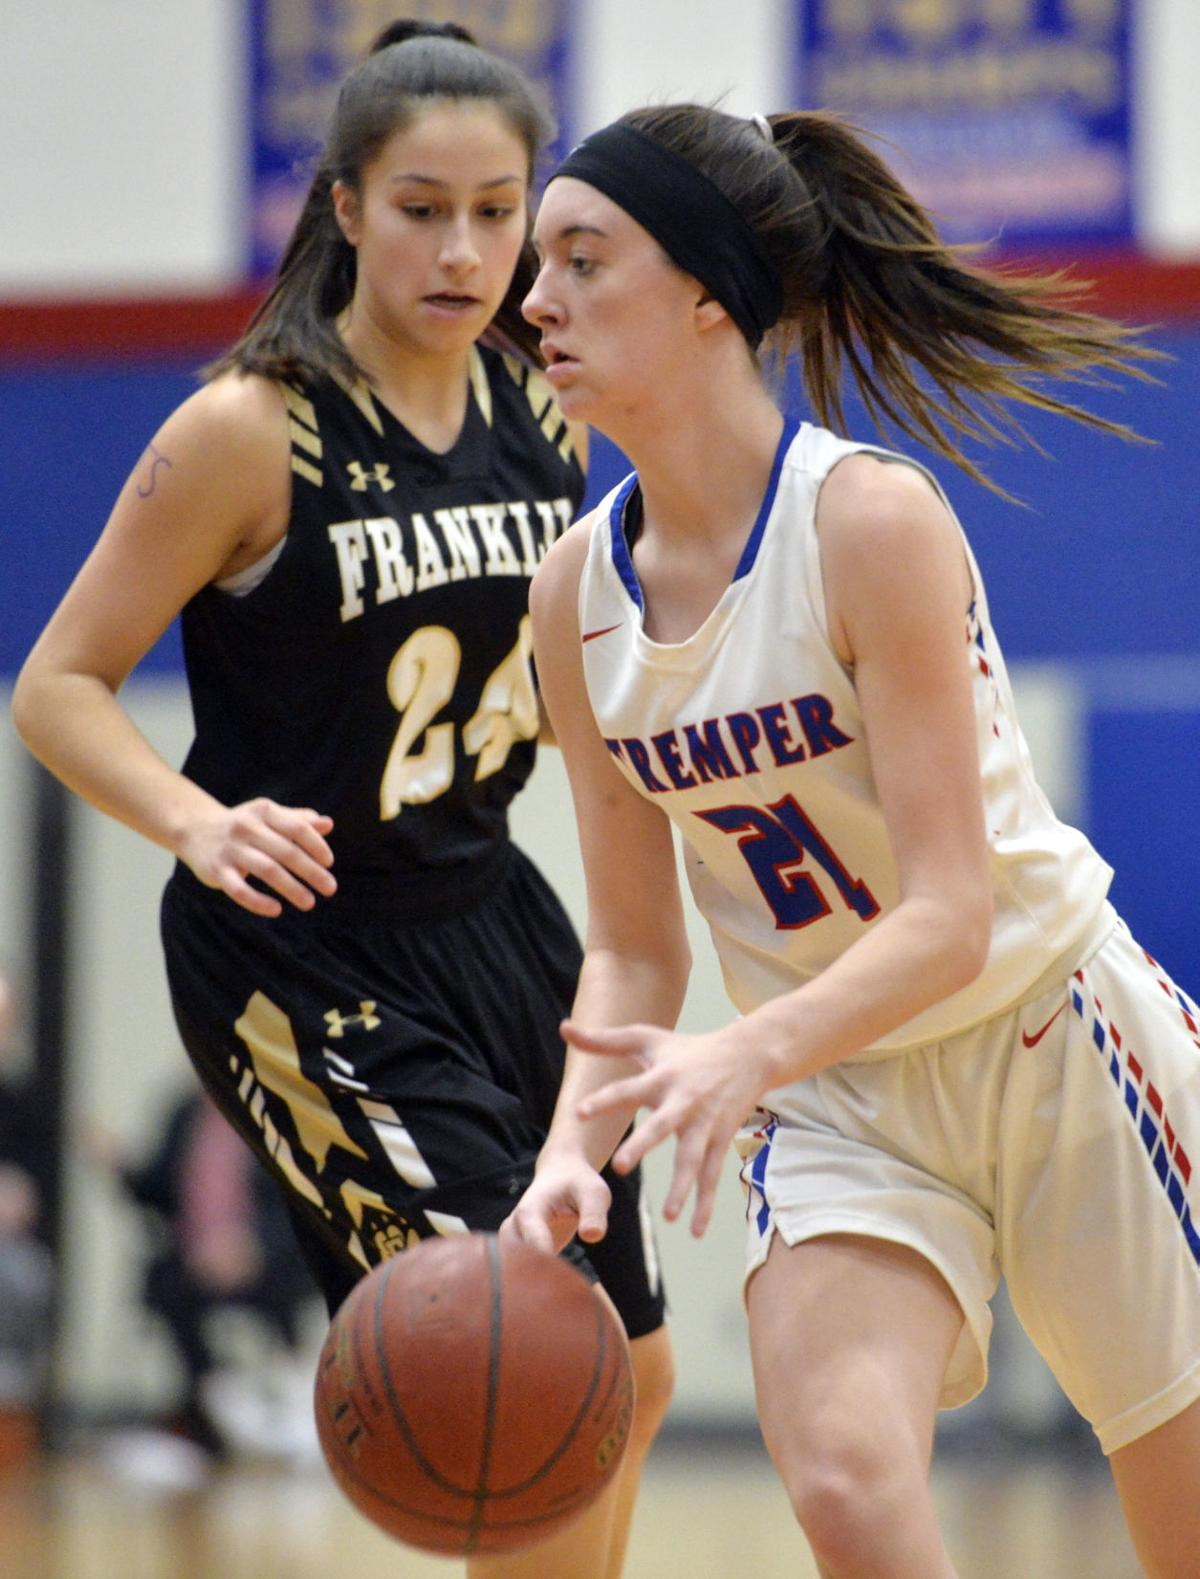 BASKETBALL TREMPER FRANKLIN